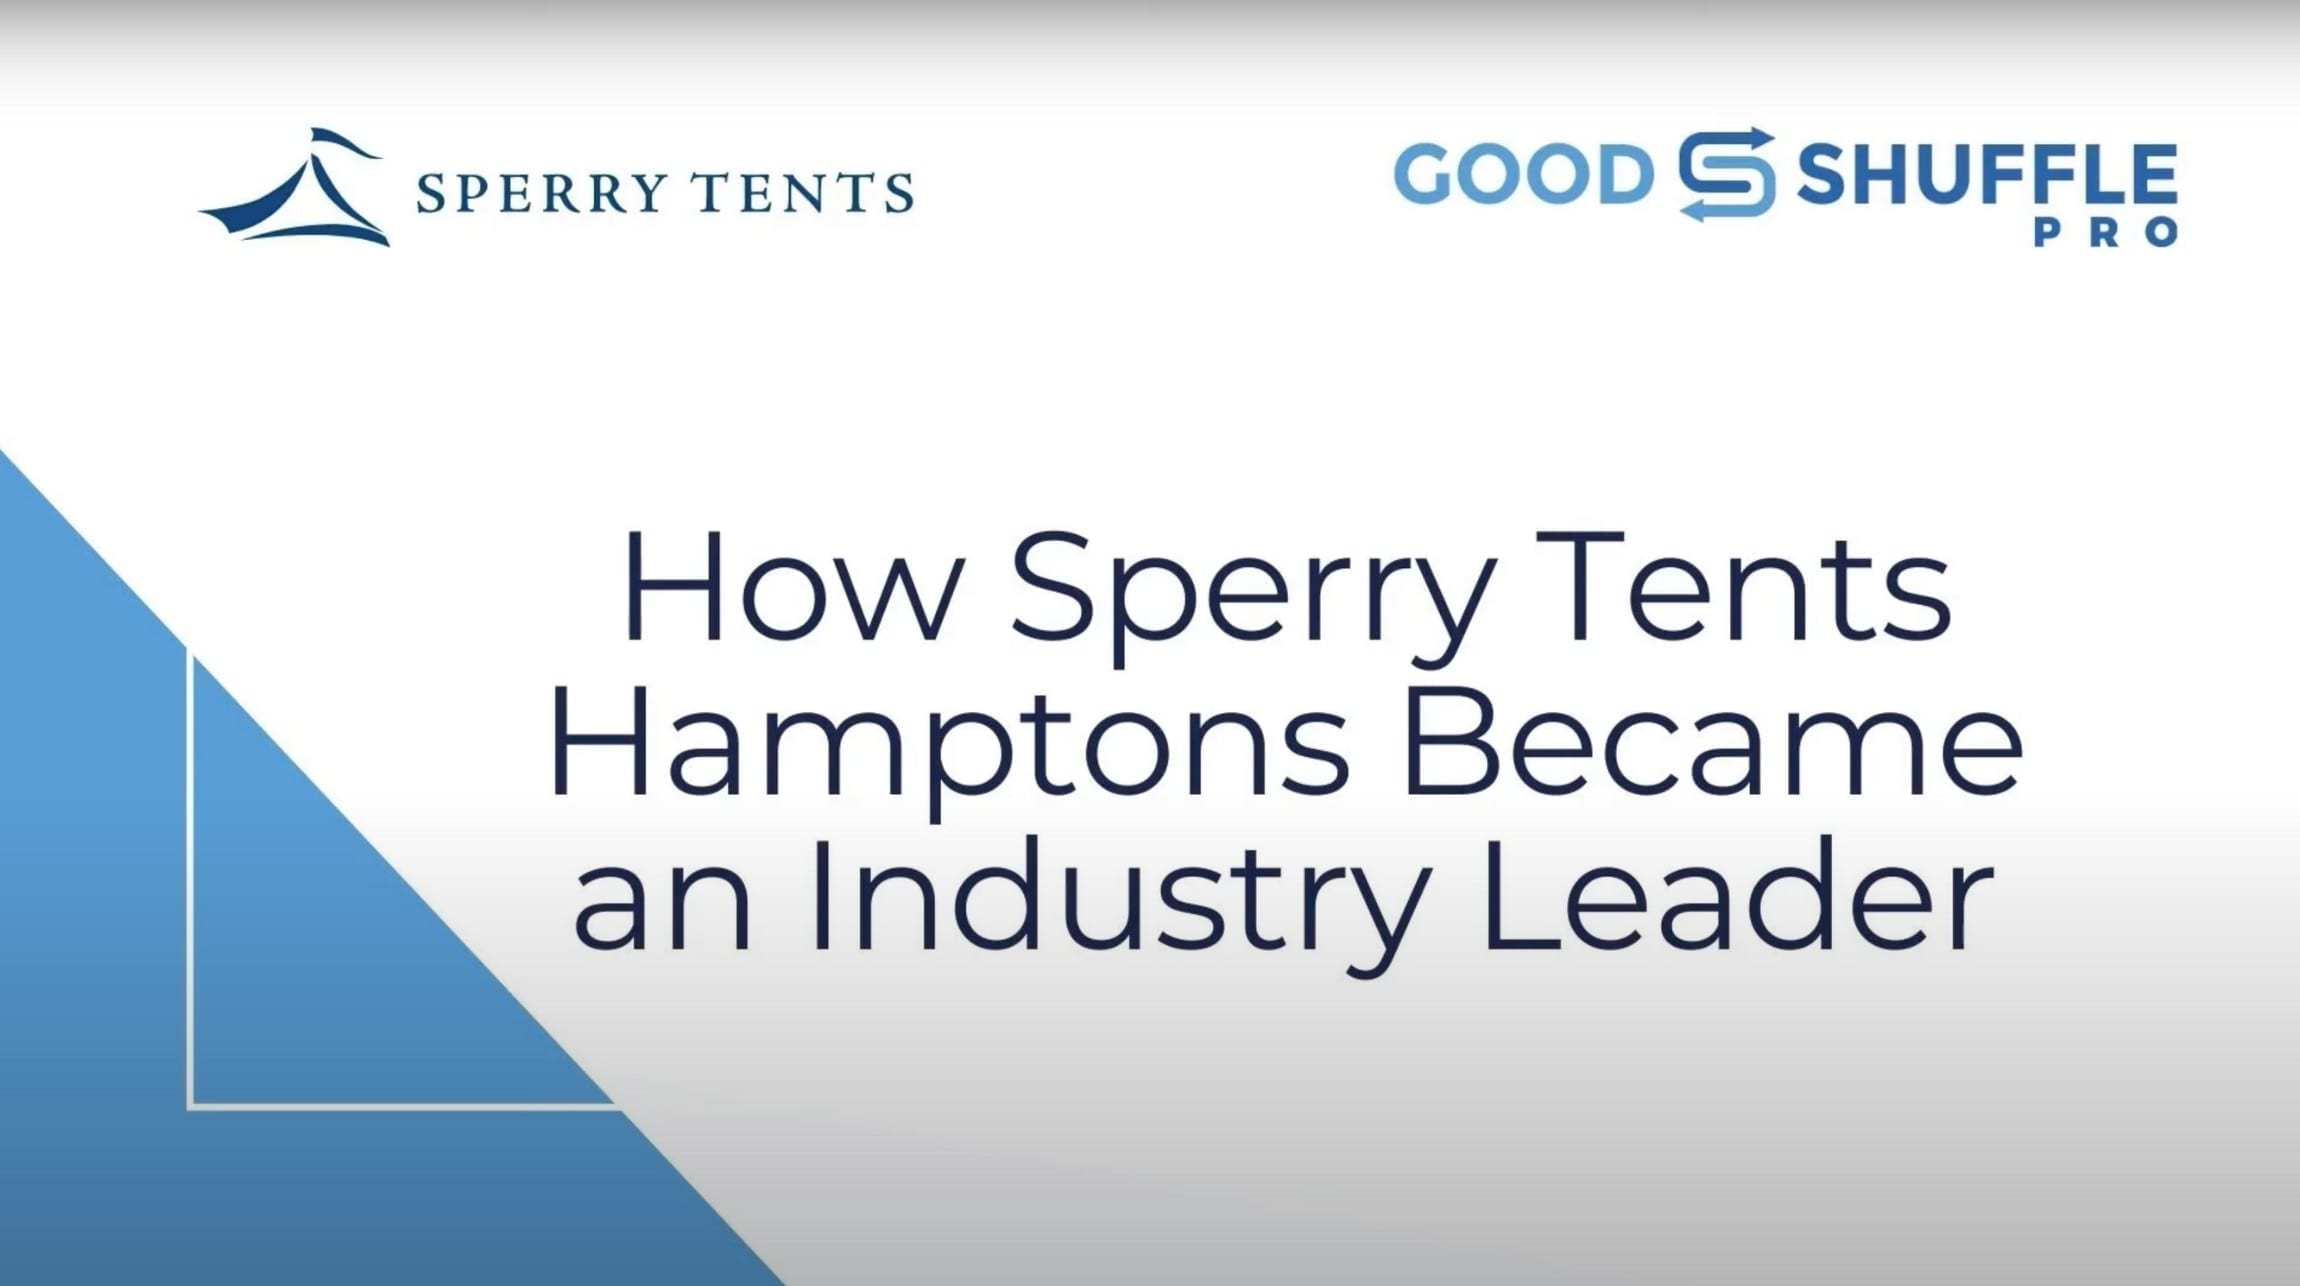 How Sperry Tents Hamptons Became an Industry Leader webinar